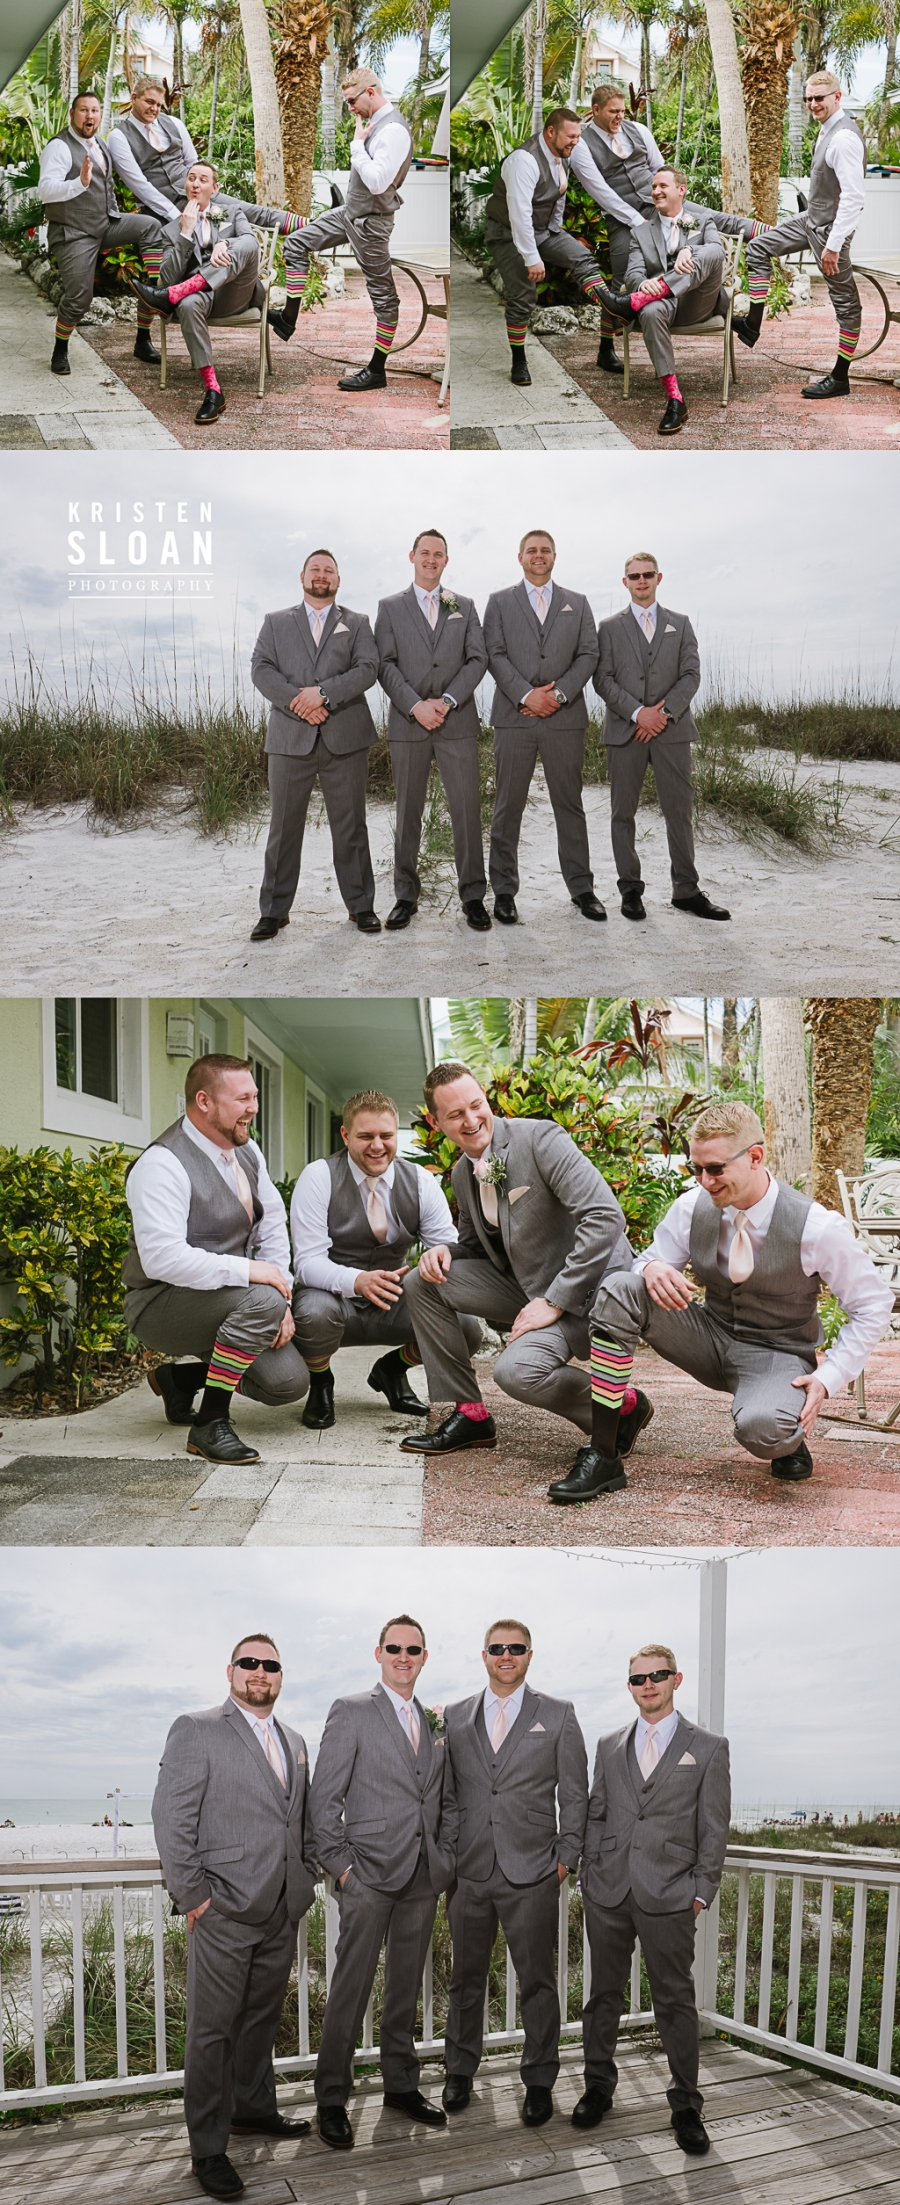 Anna Maria Island Florida Beach Wedding Photographer Kristen Sloan, Sandbar Restaurant Wedding Anna Maria Island